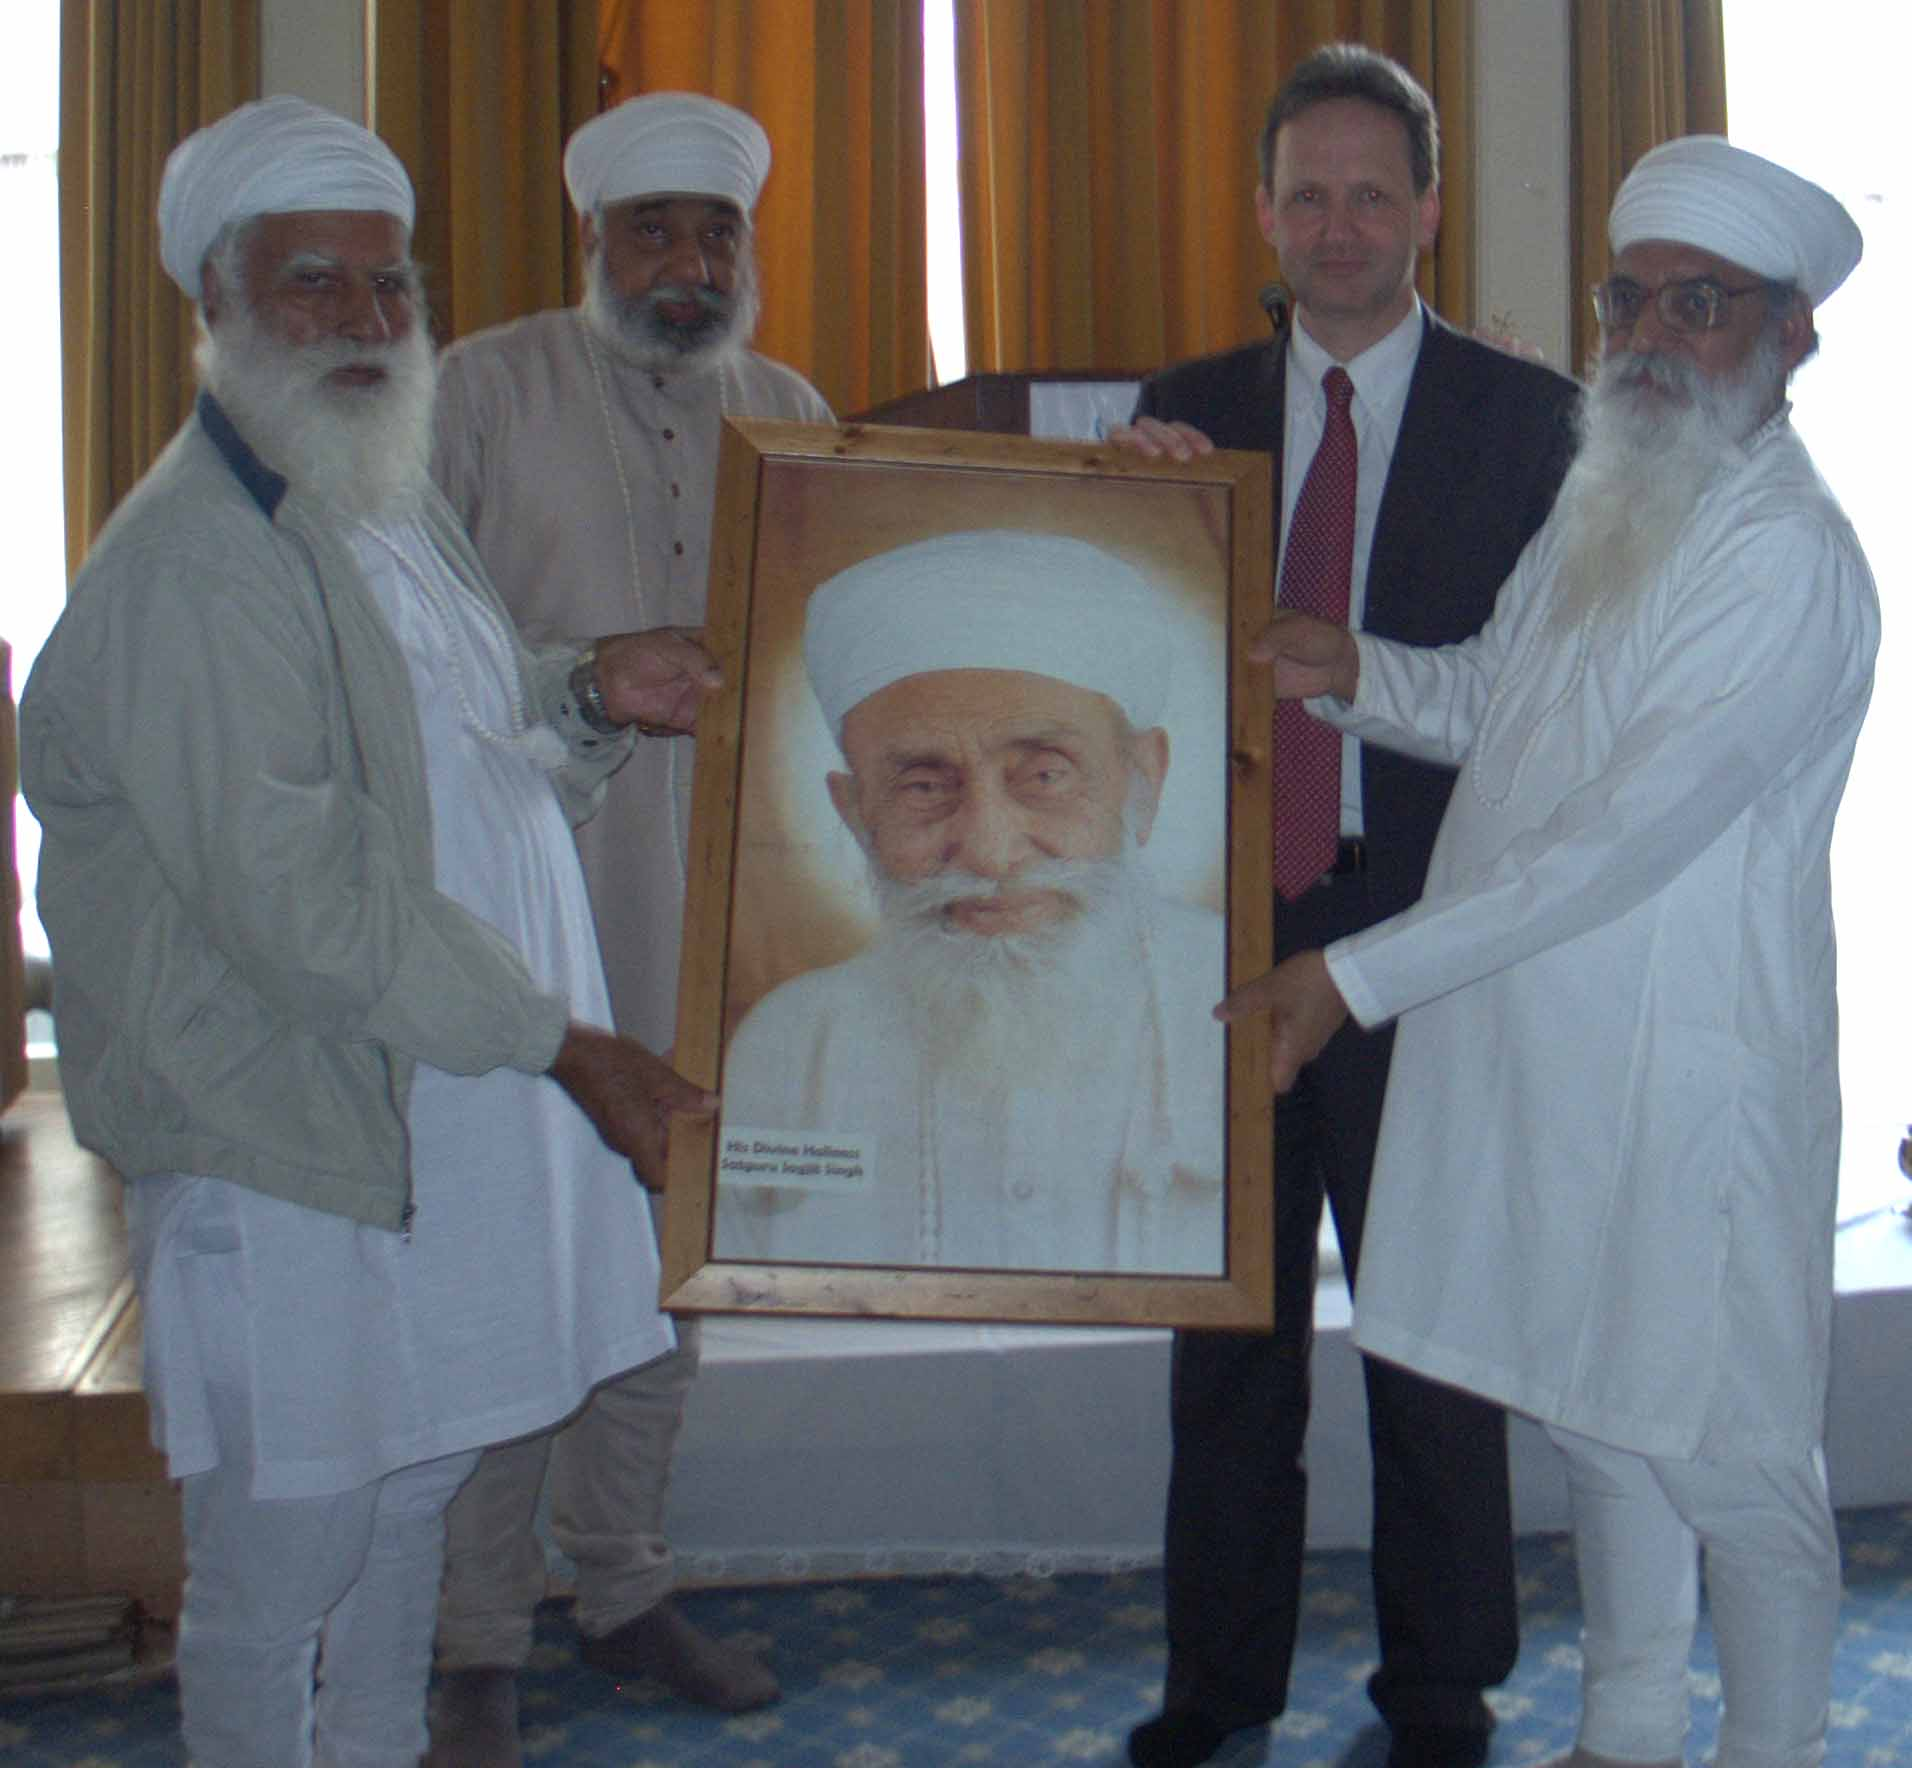 Presented with a Photo of the Sikh Leader His Divine Holiness Satguru Jagjit Singh